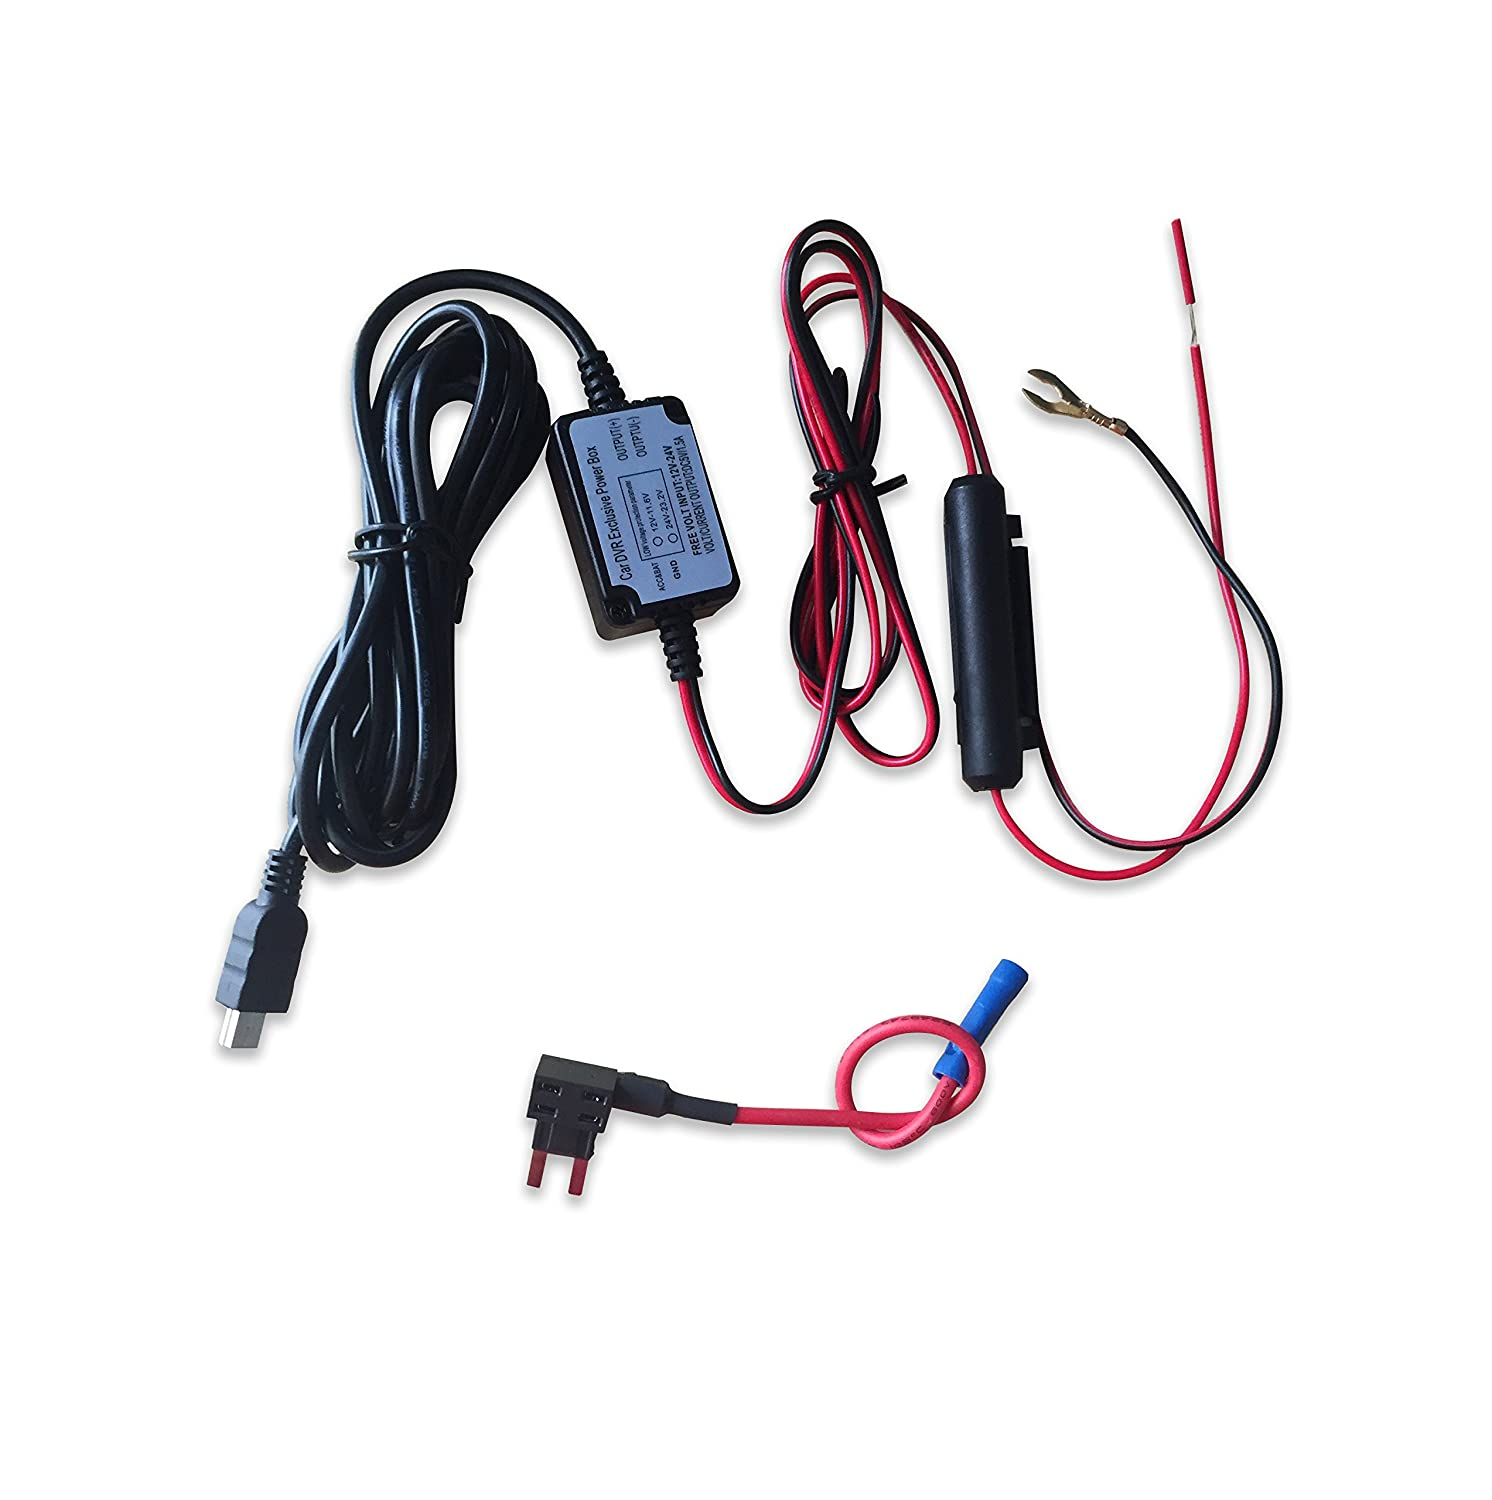 81vasrBJwWL._SL1500_ amazon com wocst car camera hard wire kit mini usb dash cam 10 House Fuse Box Diagram at webbmarketing.co